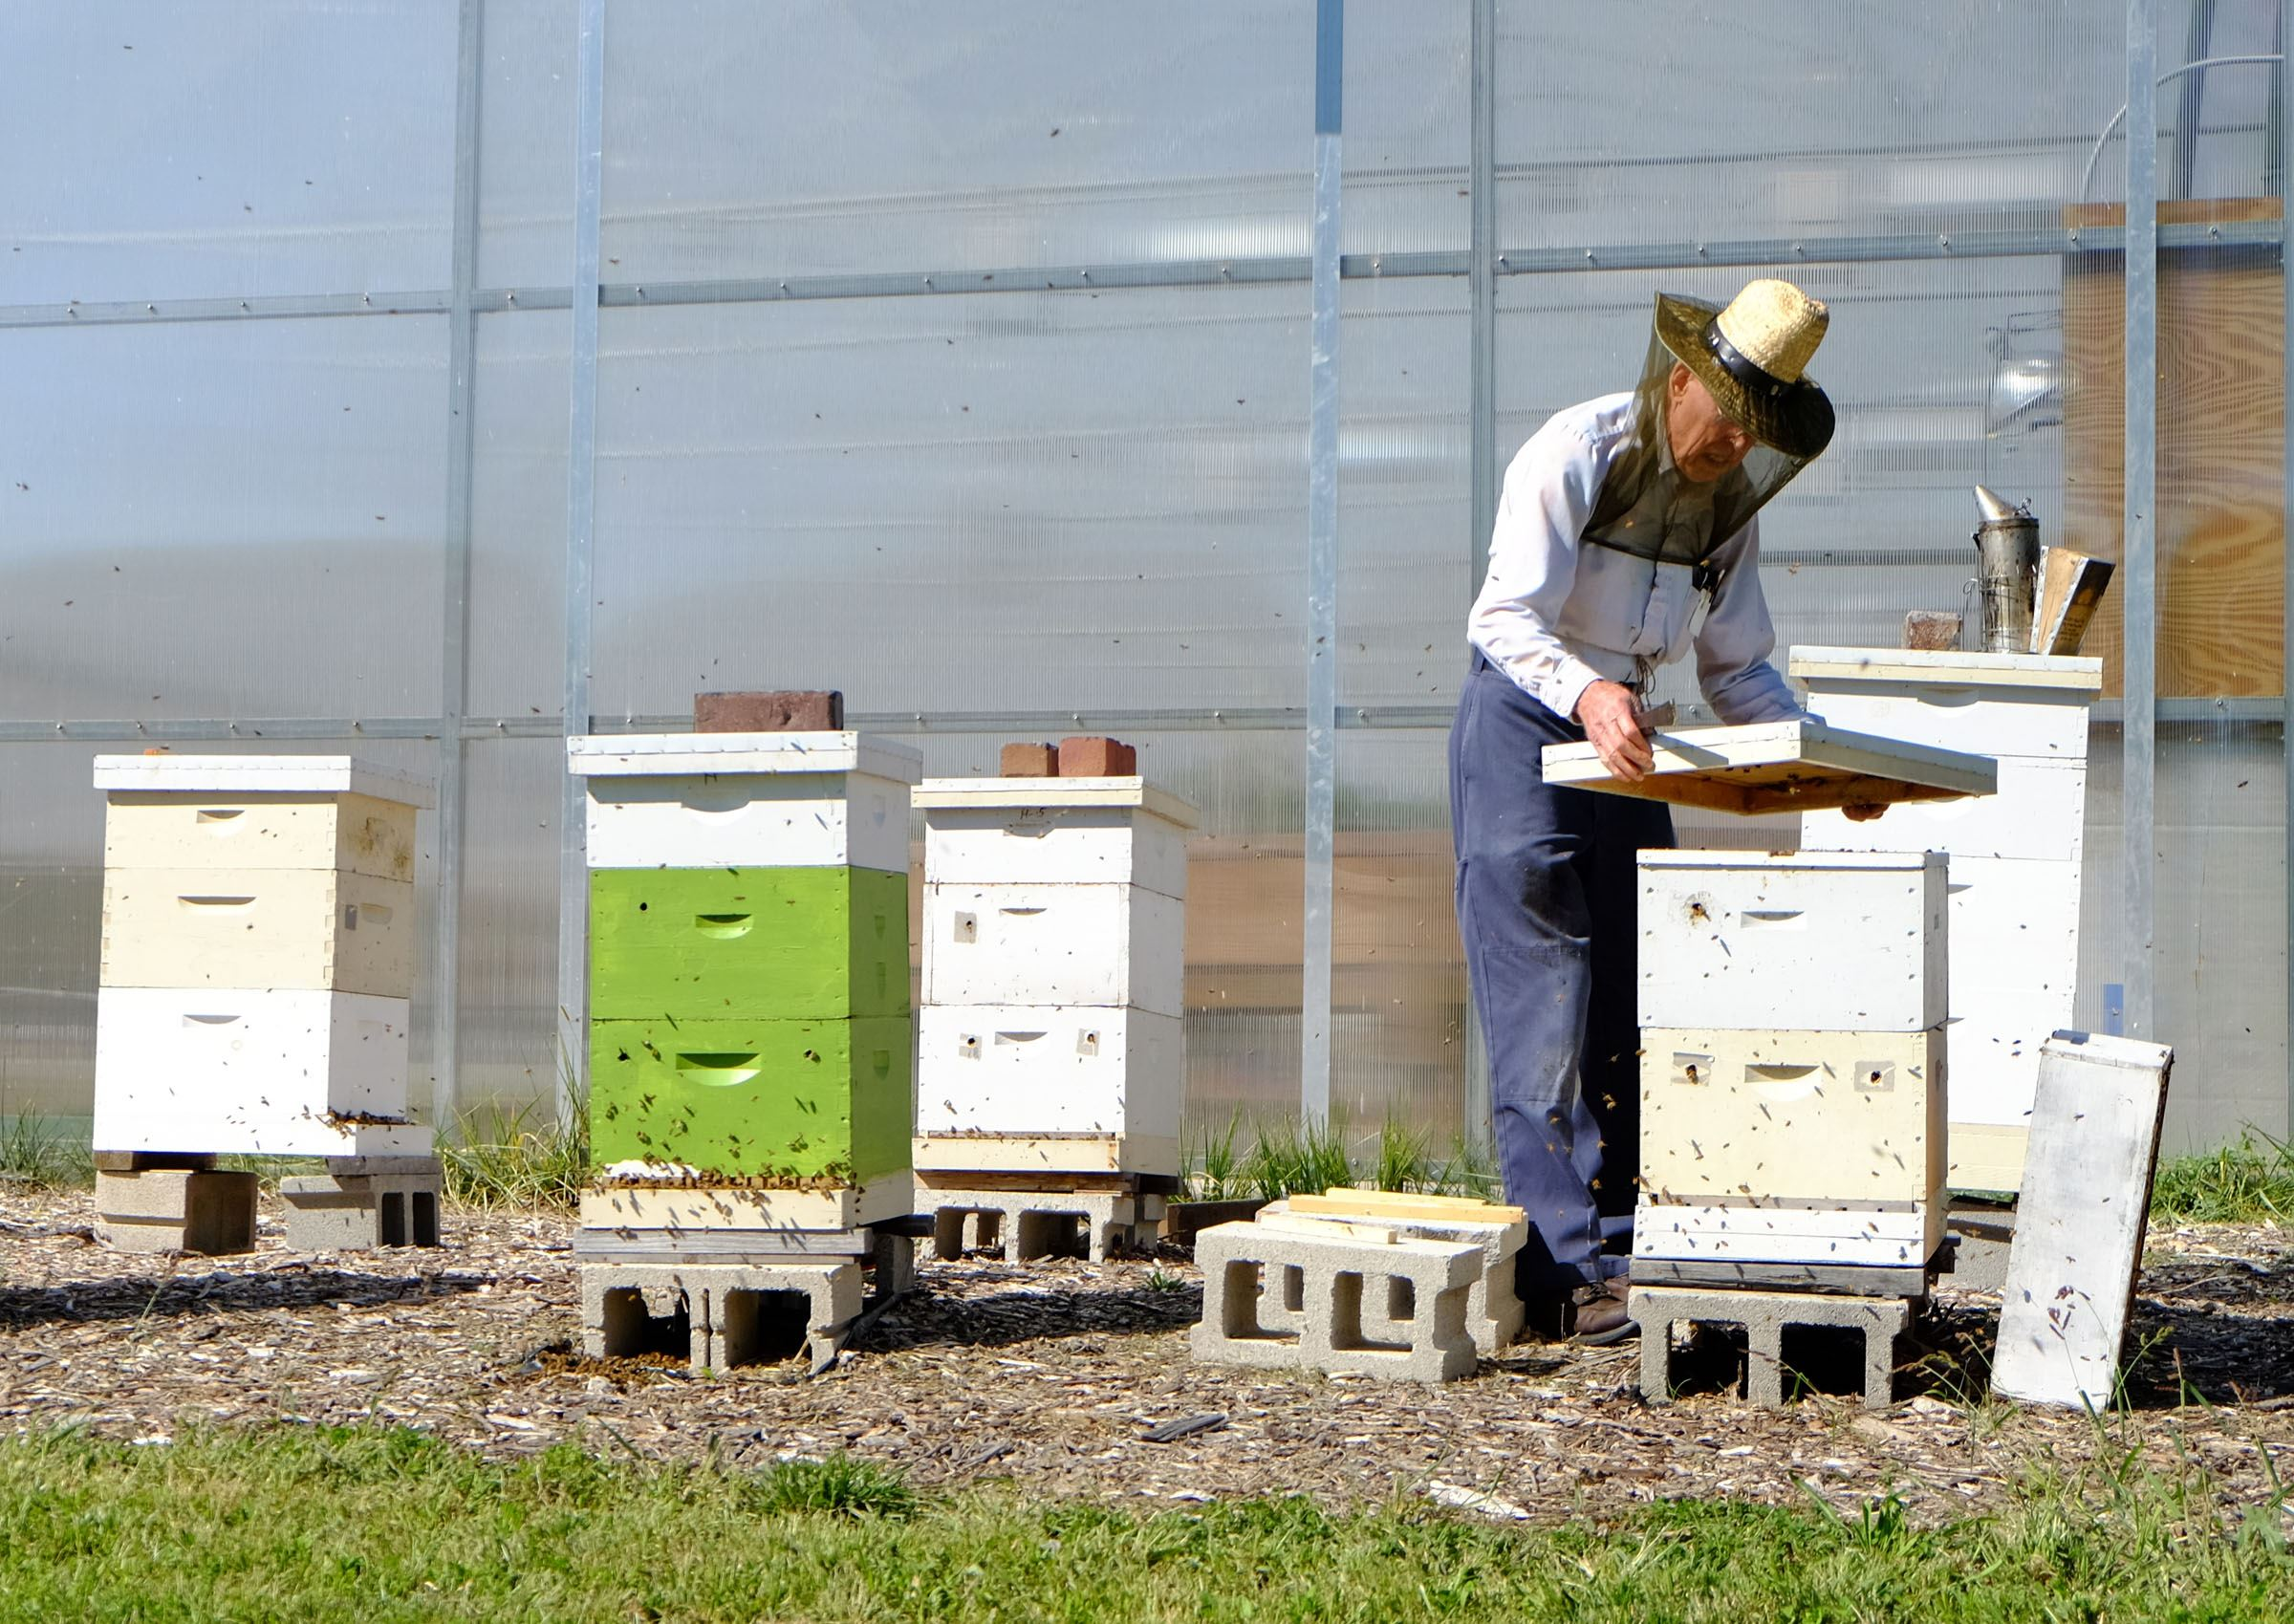 Haircut coupons toledo ohio - Horace Huse Of Toledo Is A Volunteer Beekeeper For The Bees In The Hives At The Toledo Grows Headquarters Ononeida Street In Downtown Toledo Ohio On